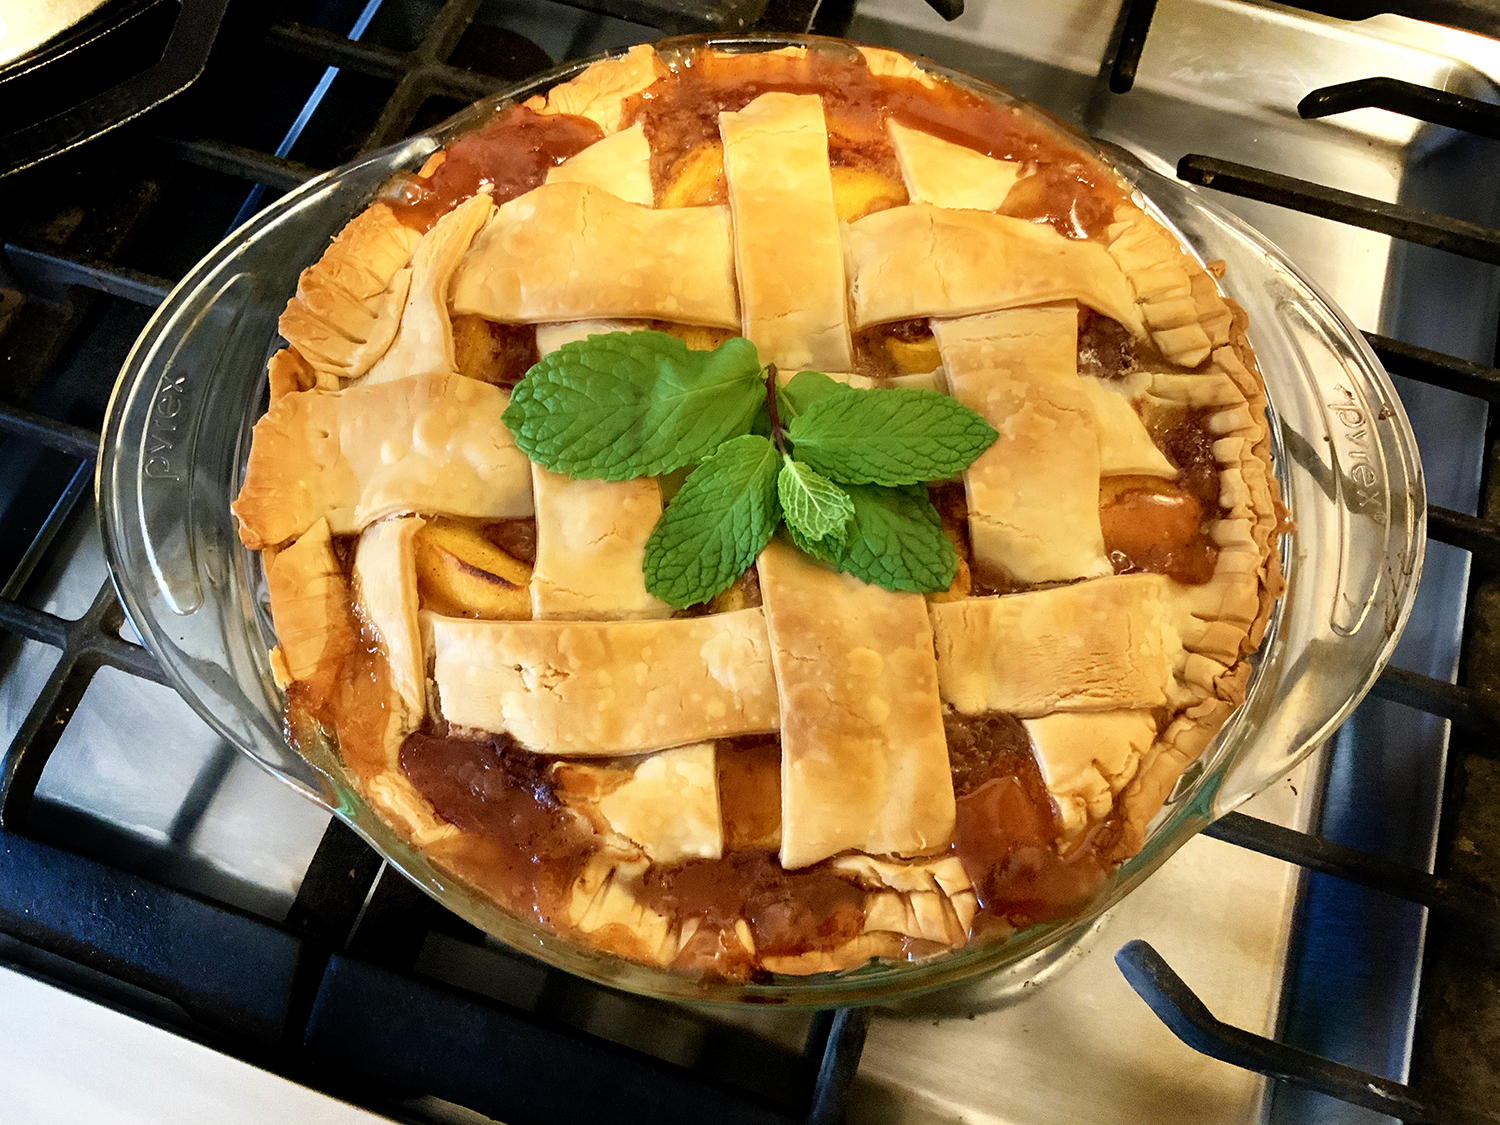 Peach Mint Pie Fresh from the oven!